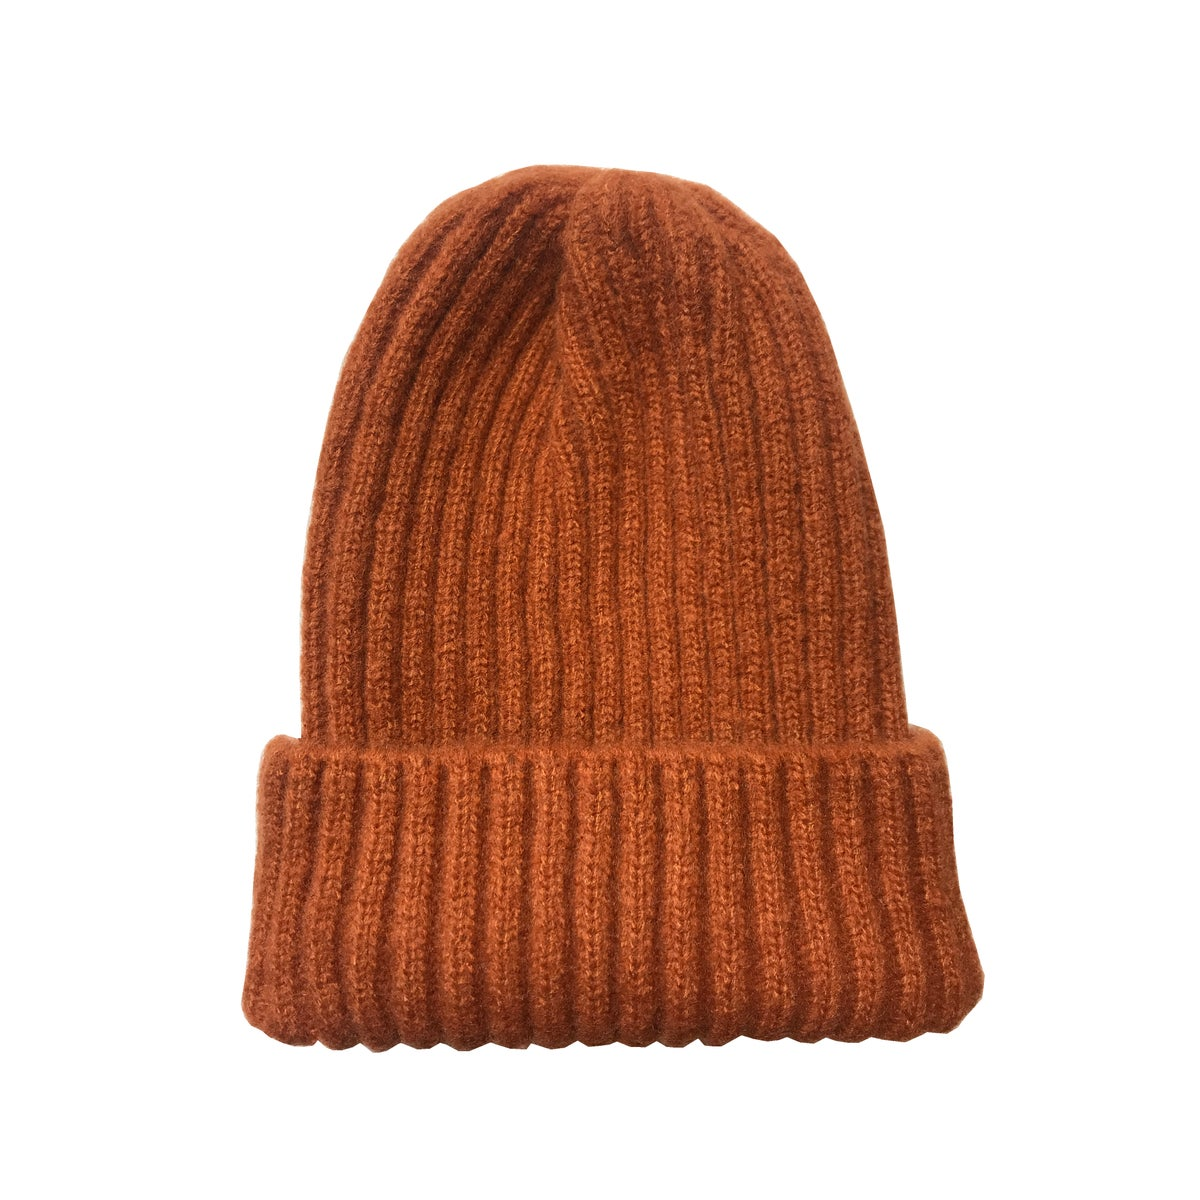 Image of Soft fisherman's style beanie/ watch cap. Rust (was £7.50)